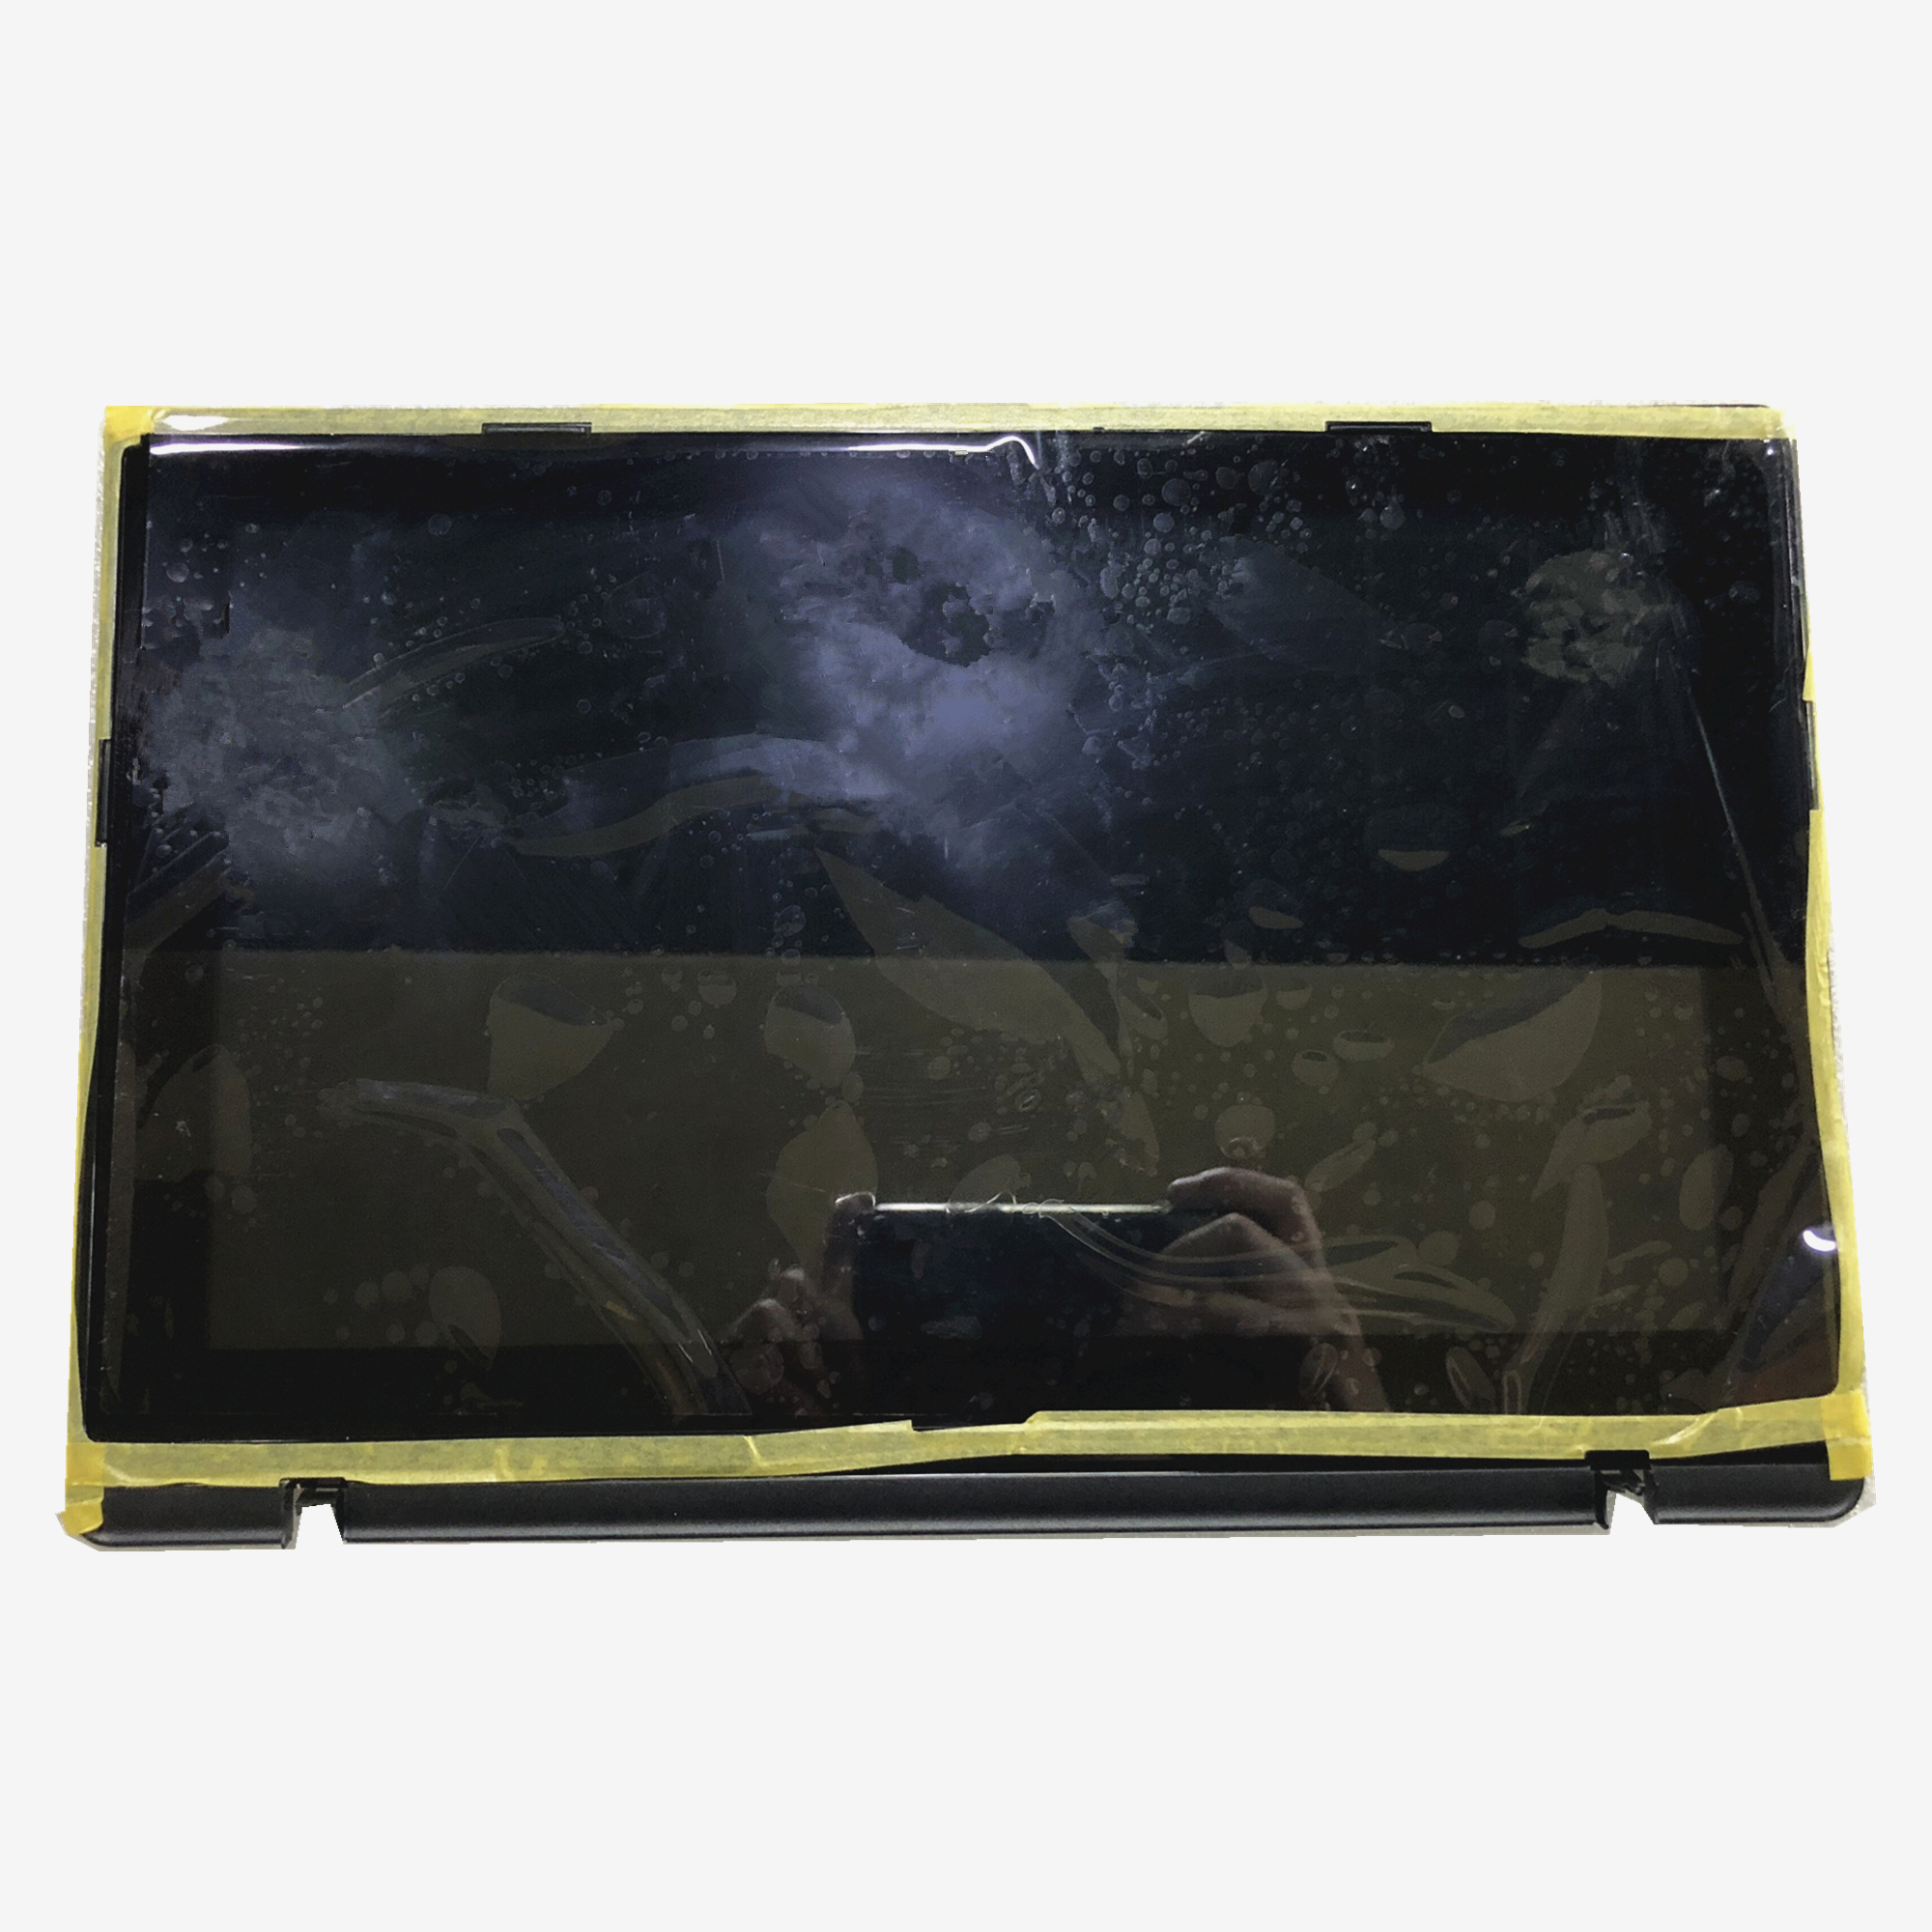 Free Shipping 11.6''inch Assembly for <font><b>Asus</b></font> <font><b>X200CA</b></font> N116BGE-EB2 Laptop Lcd Screen Display Assembly with Black Frame 1366*768 image